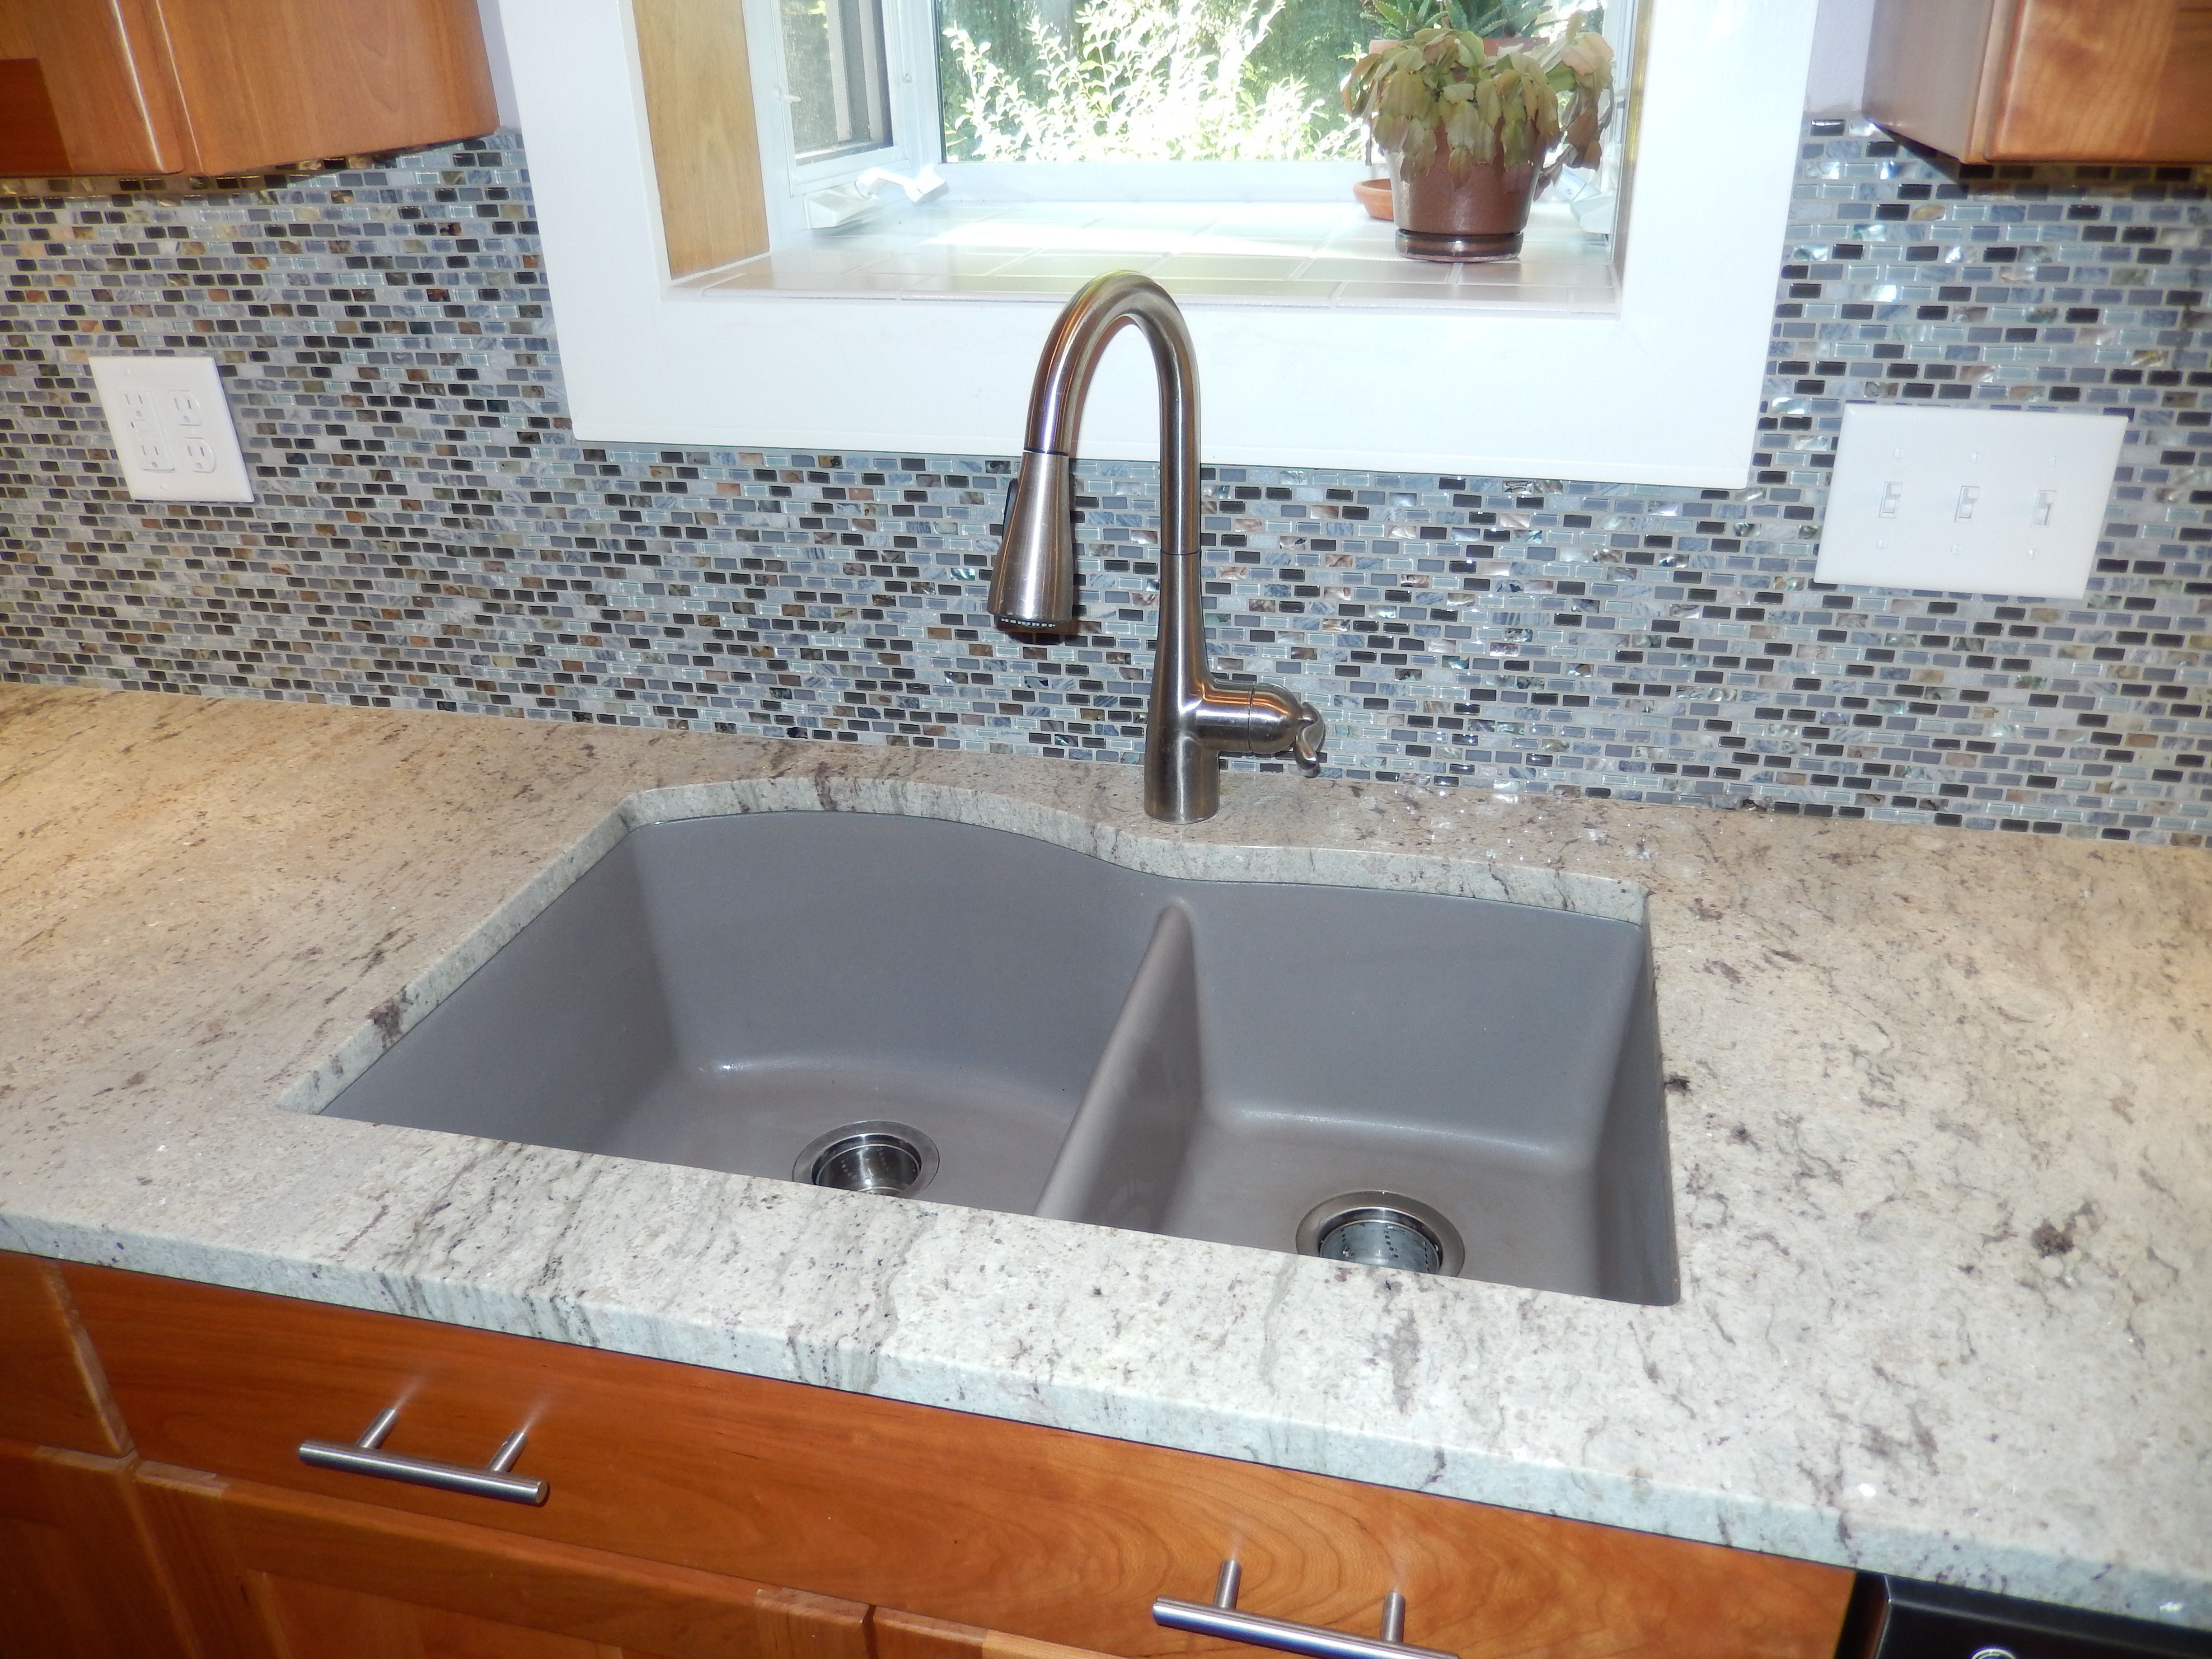 Blanco Silgranit Sink In Truffle Stone Gl Mosaic Backsplash Tiles River White Granite Counters